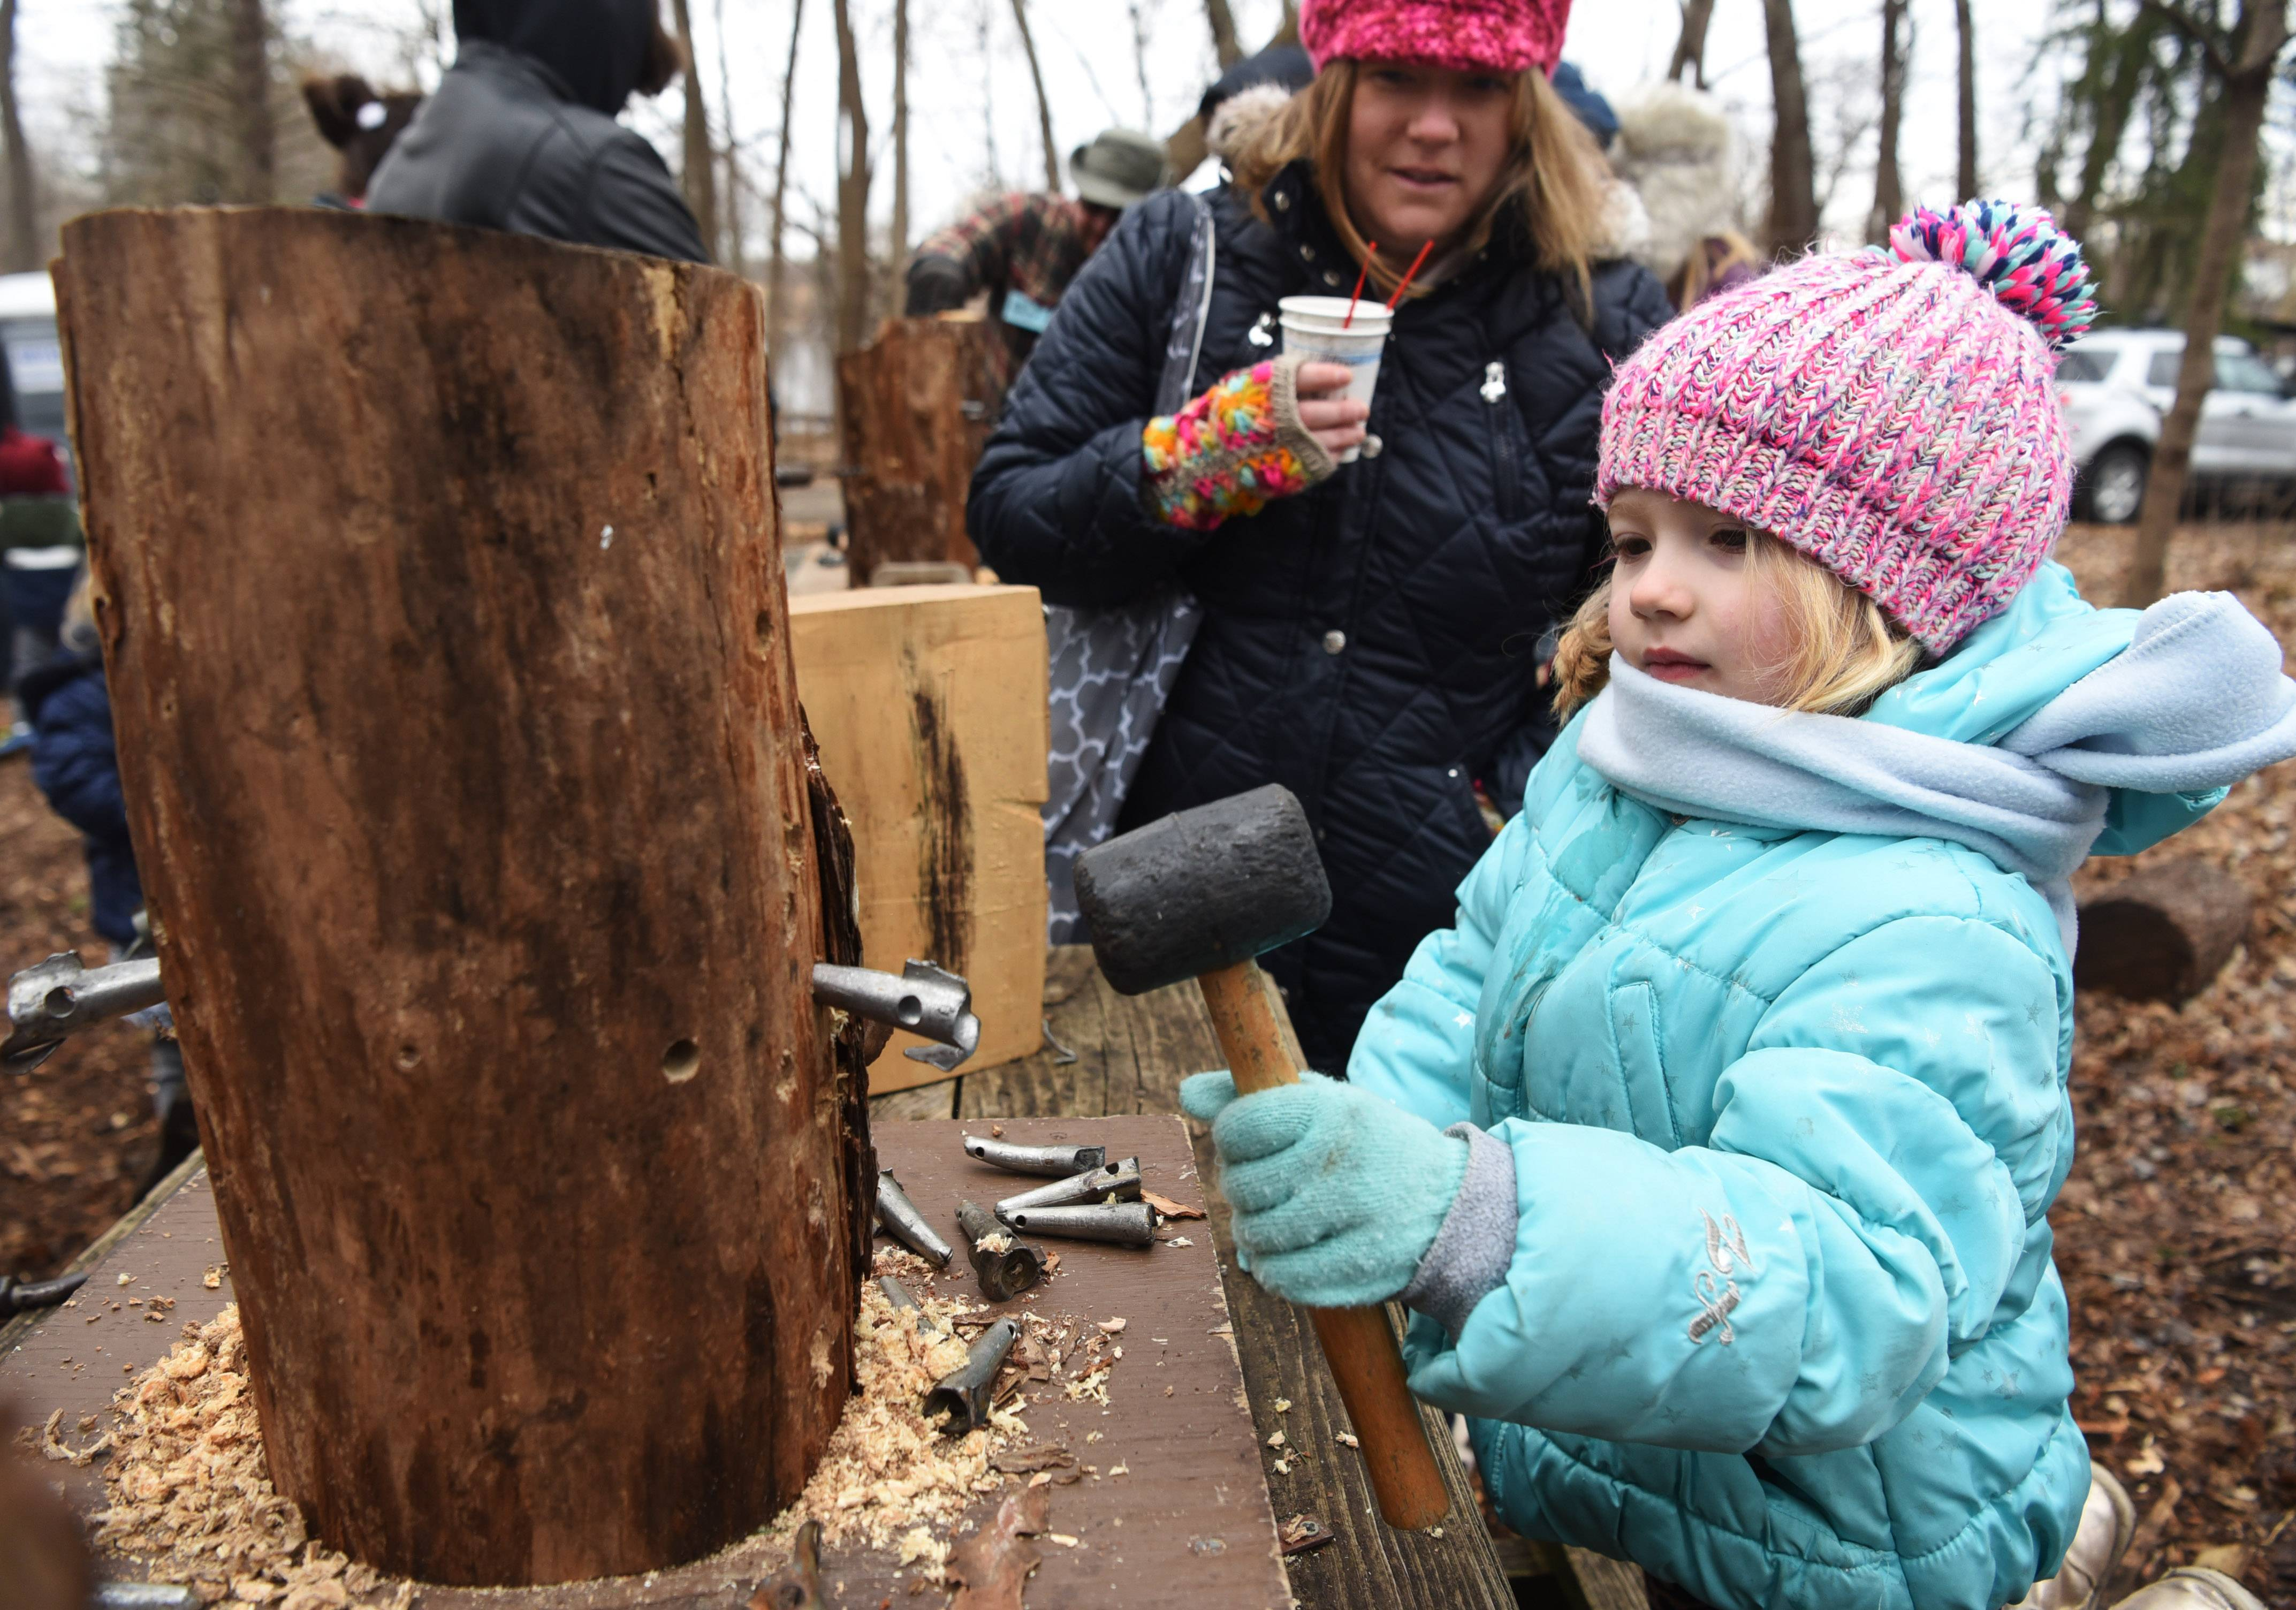 Taylor Corrales, 6, of Roselle learns how to tap us into a maple tree to draw the sap used in making syrup while attending last year's Sugar Bush Fair at Spring Valley Nature Center in Schaumburg. The annual event returns this weekend.